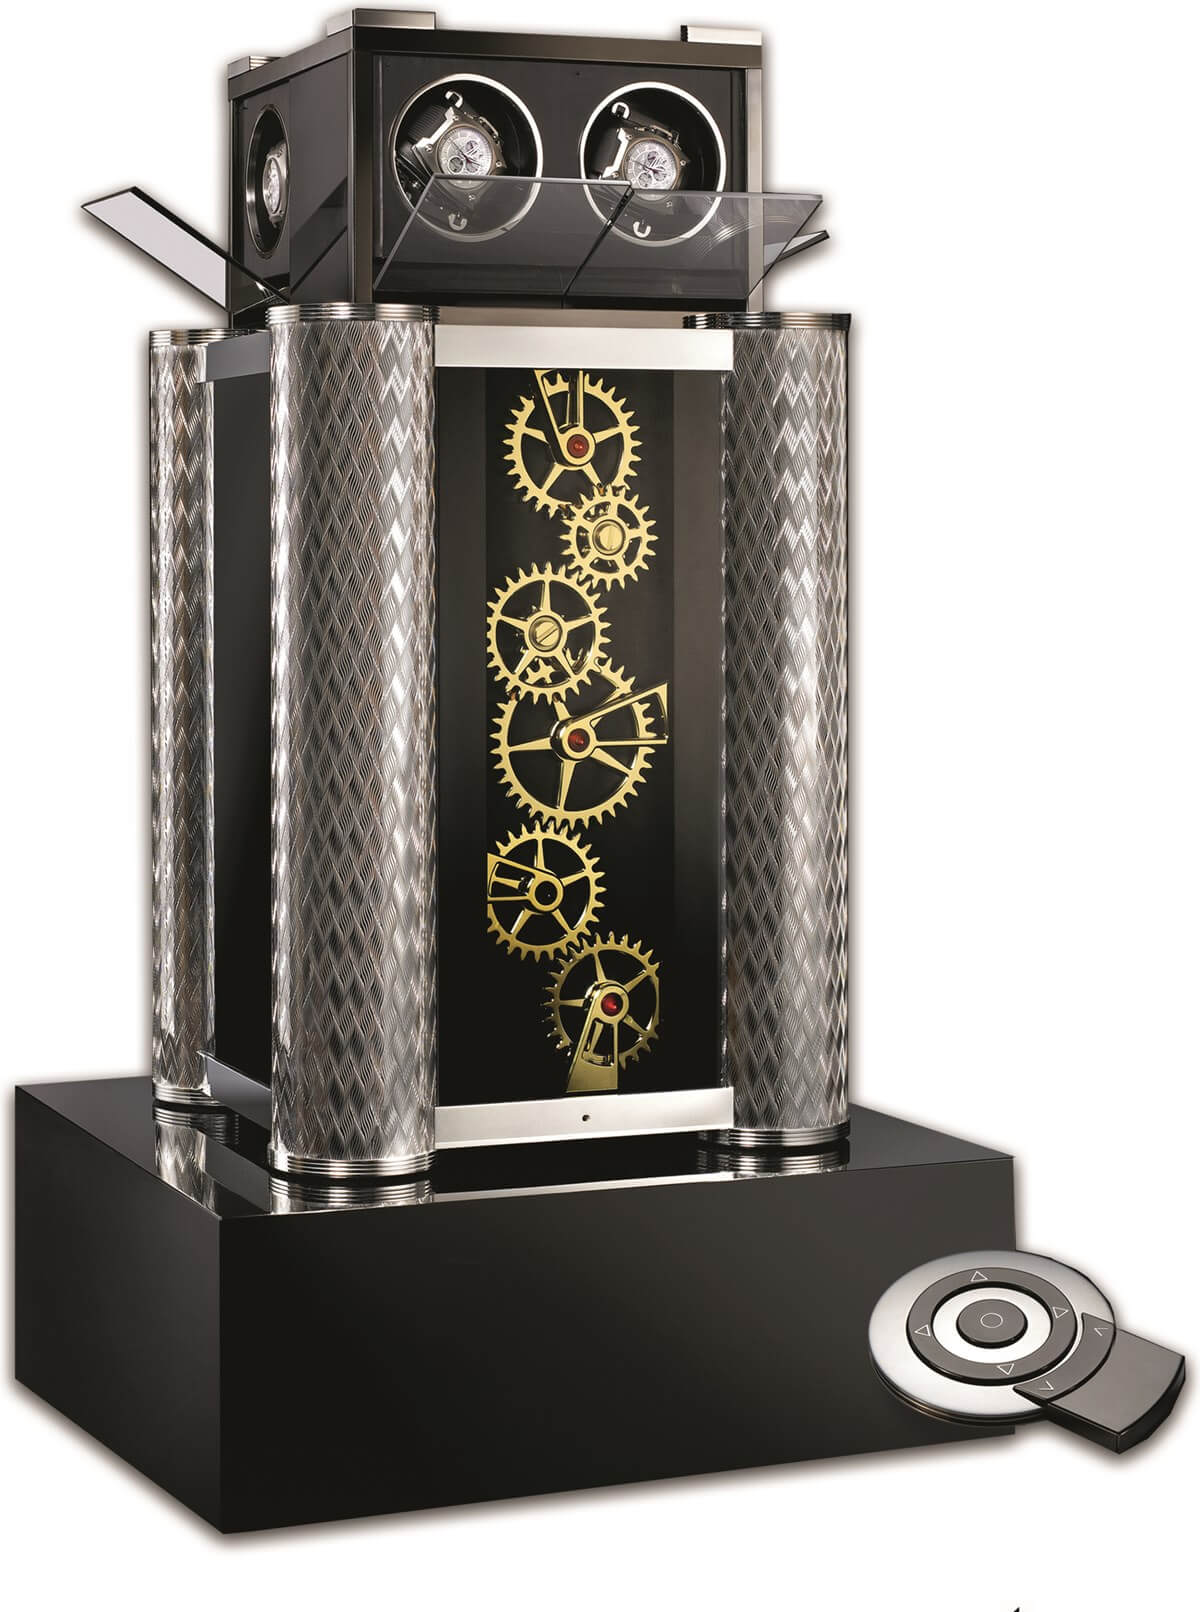 RDI Safe-Lift for 4 watches